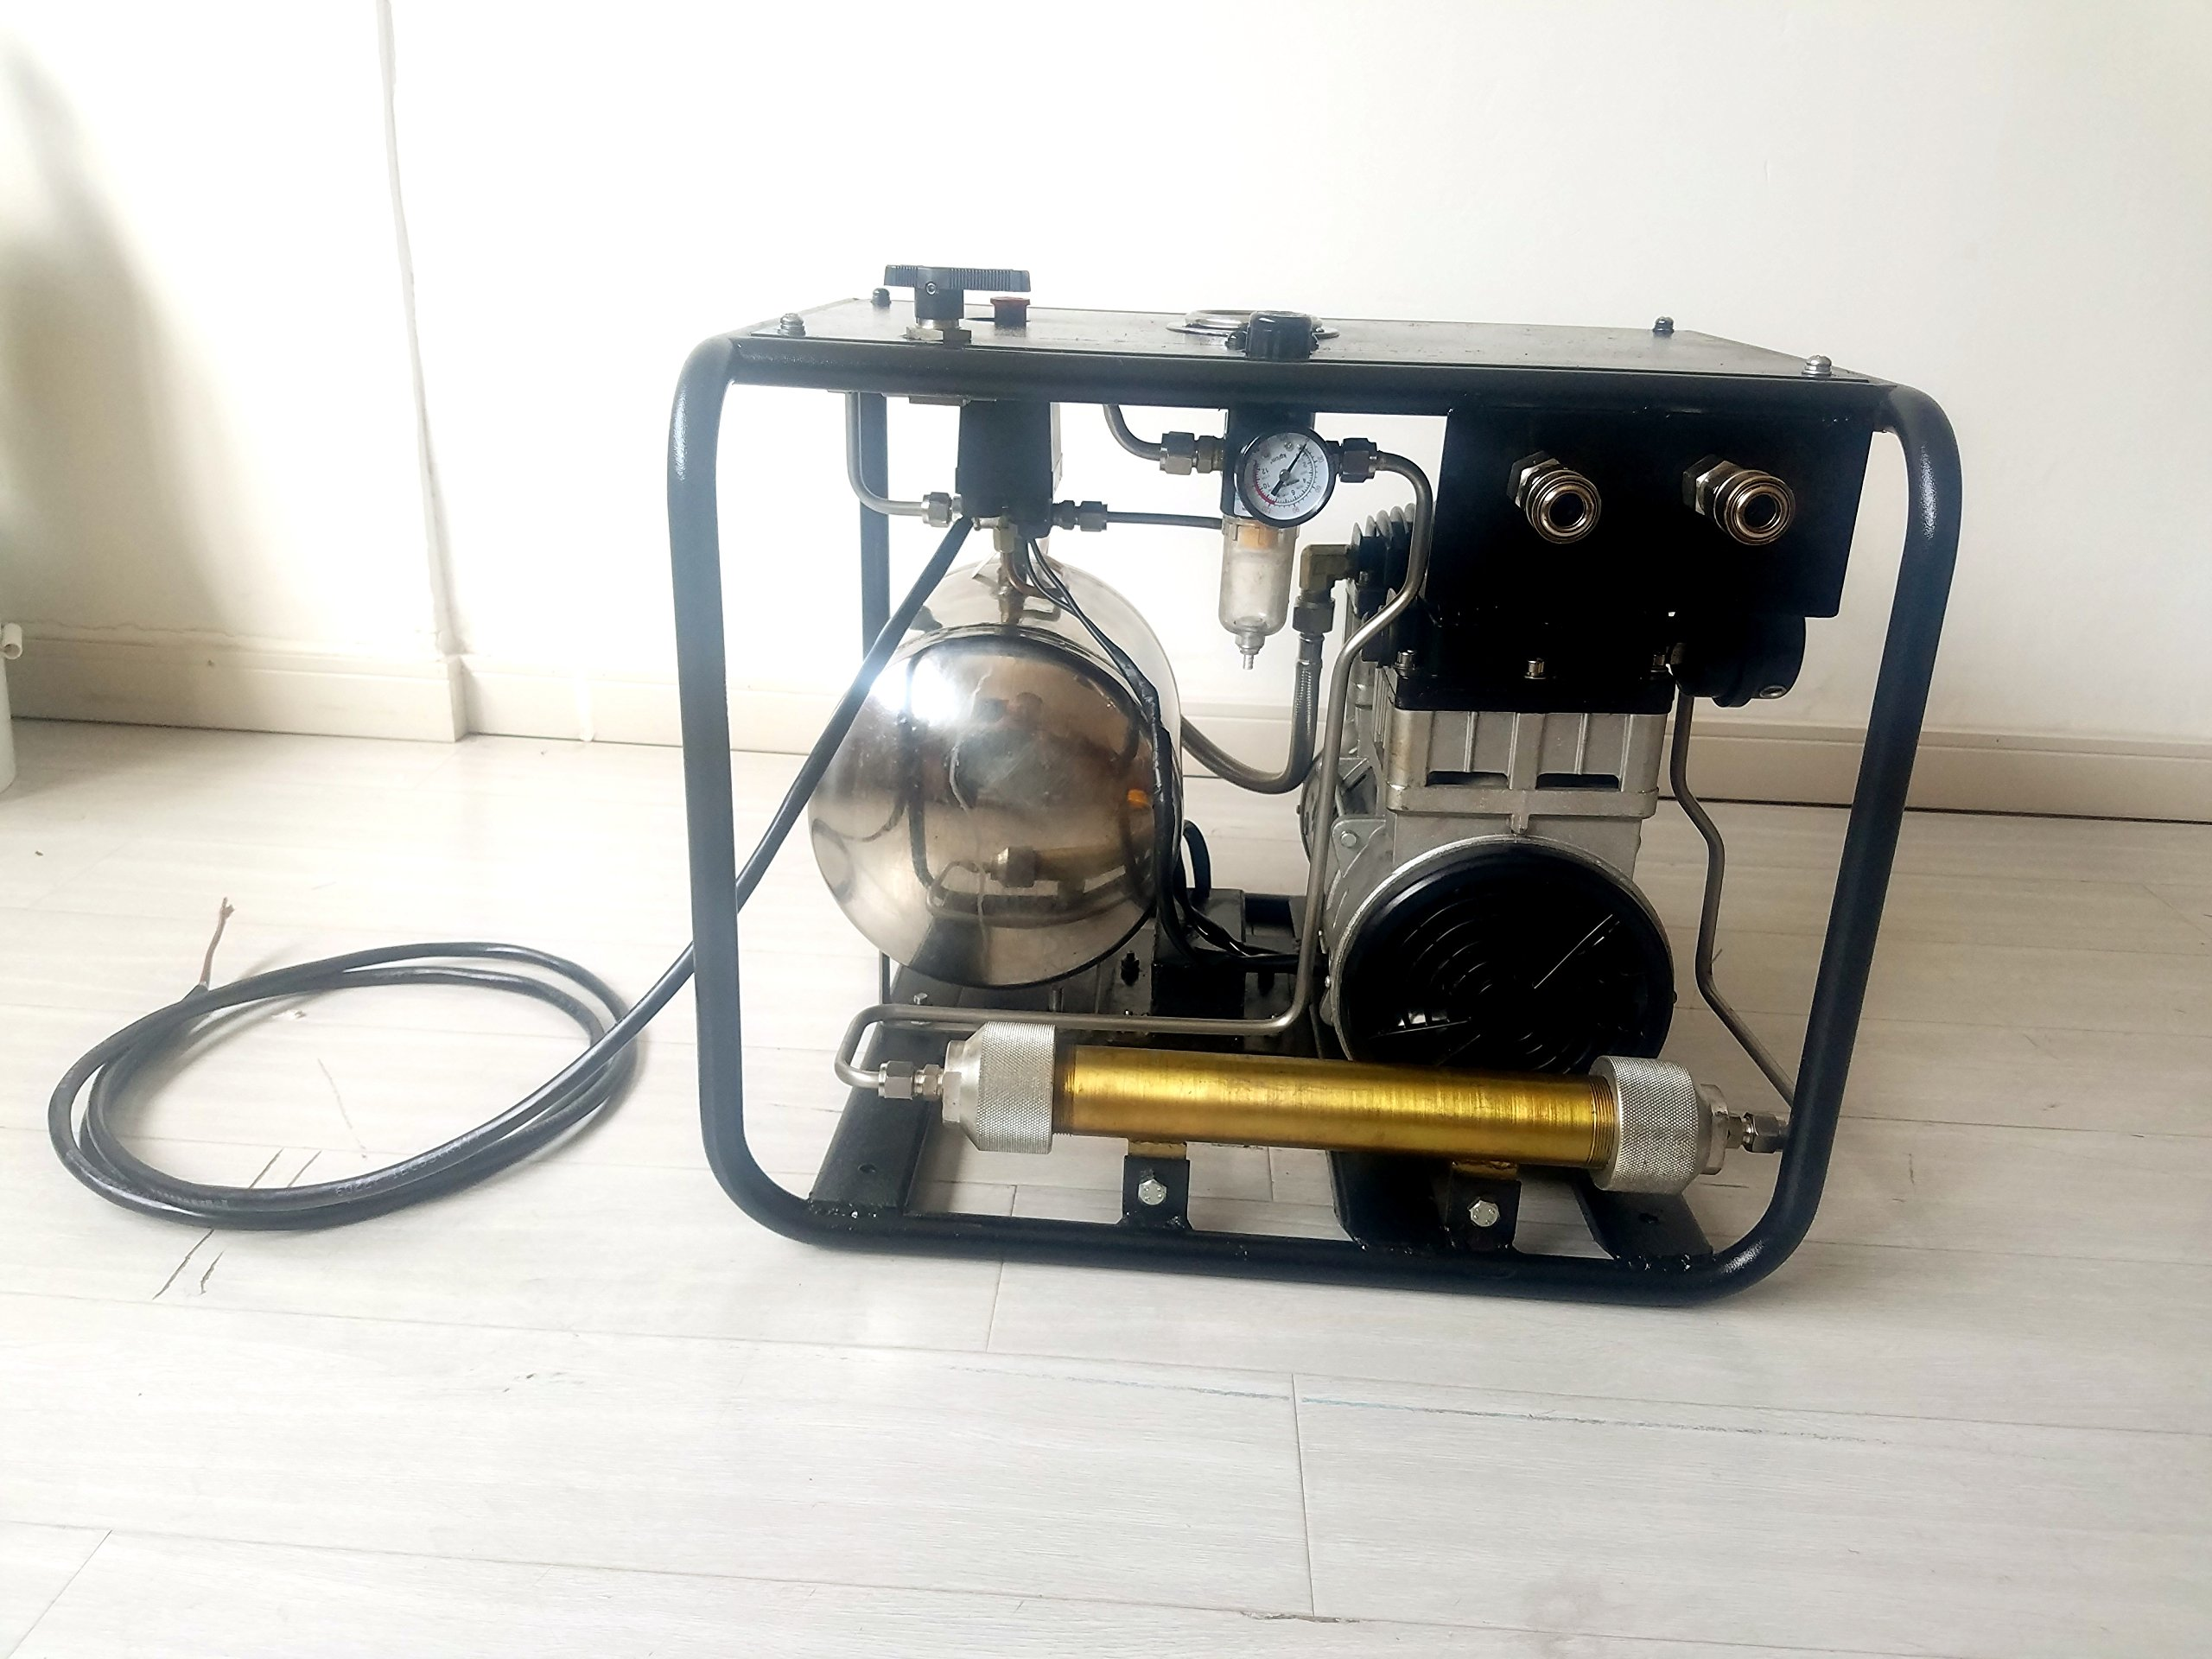 D Machinery Oil-free Hookah Dive System Third Lung Serface, 110V Electronic Compressor with 15m / 50 ft Hose & Regulator/Respirator, SCU80E (1100W) by D Machinery (Image #3)